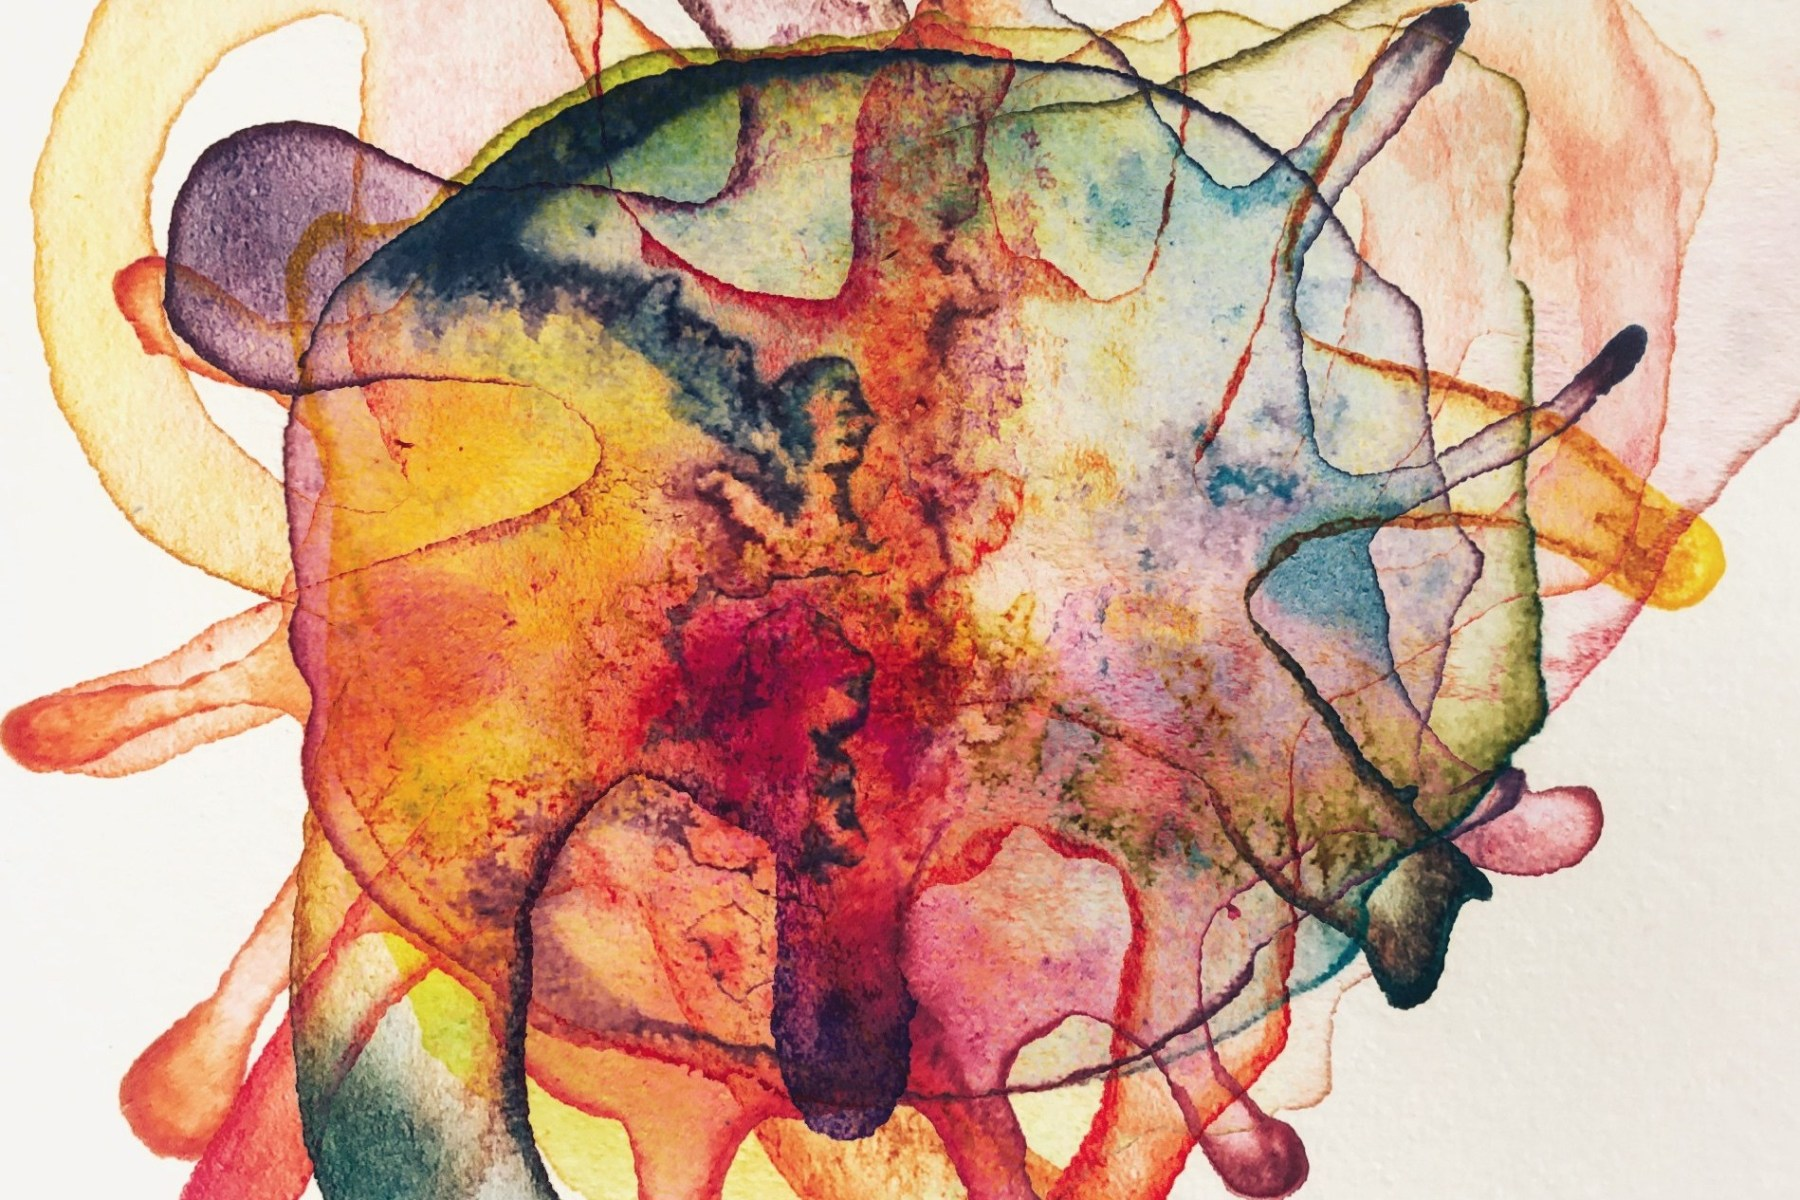 conscious art - layers and facets of Self - timeless